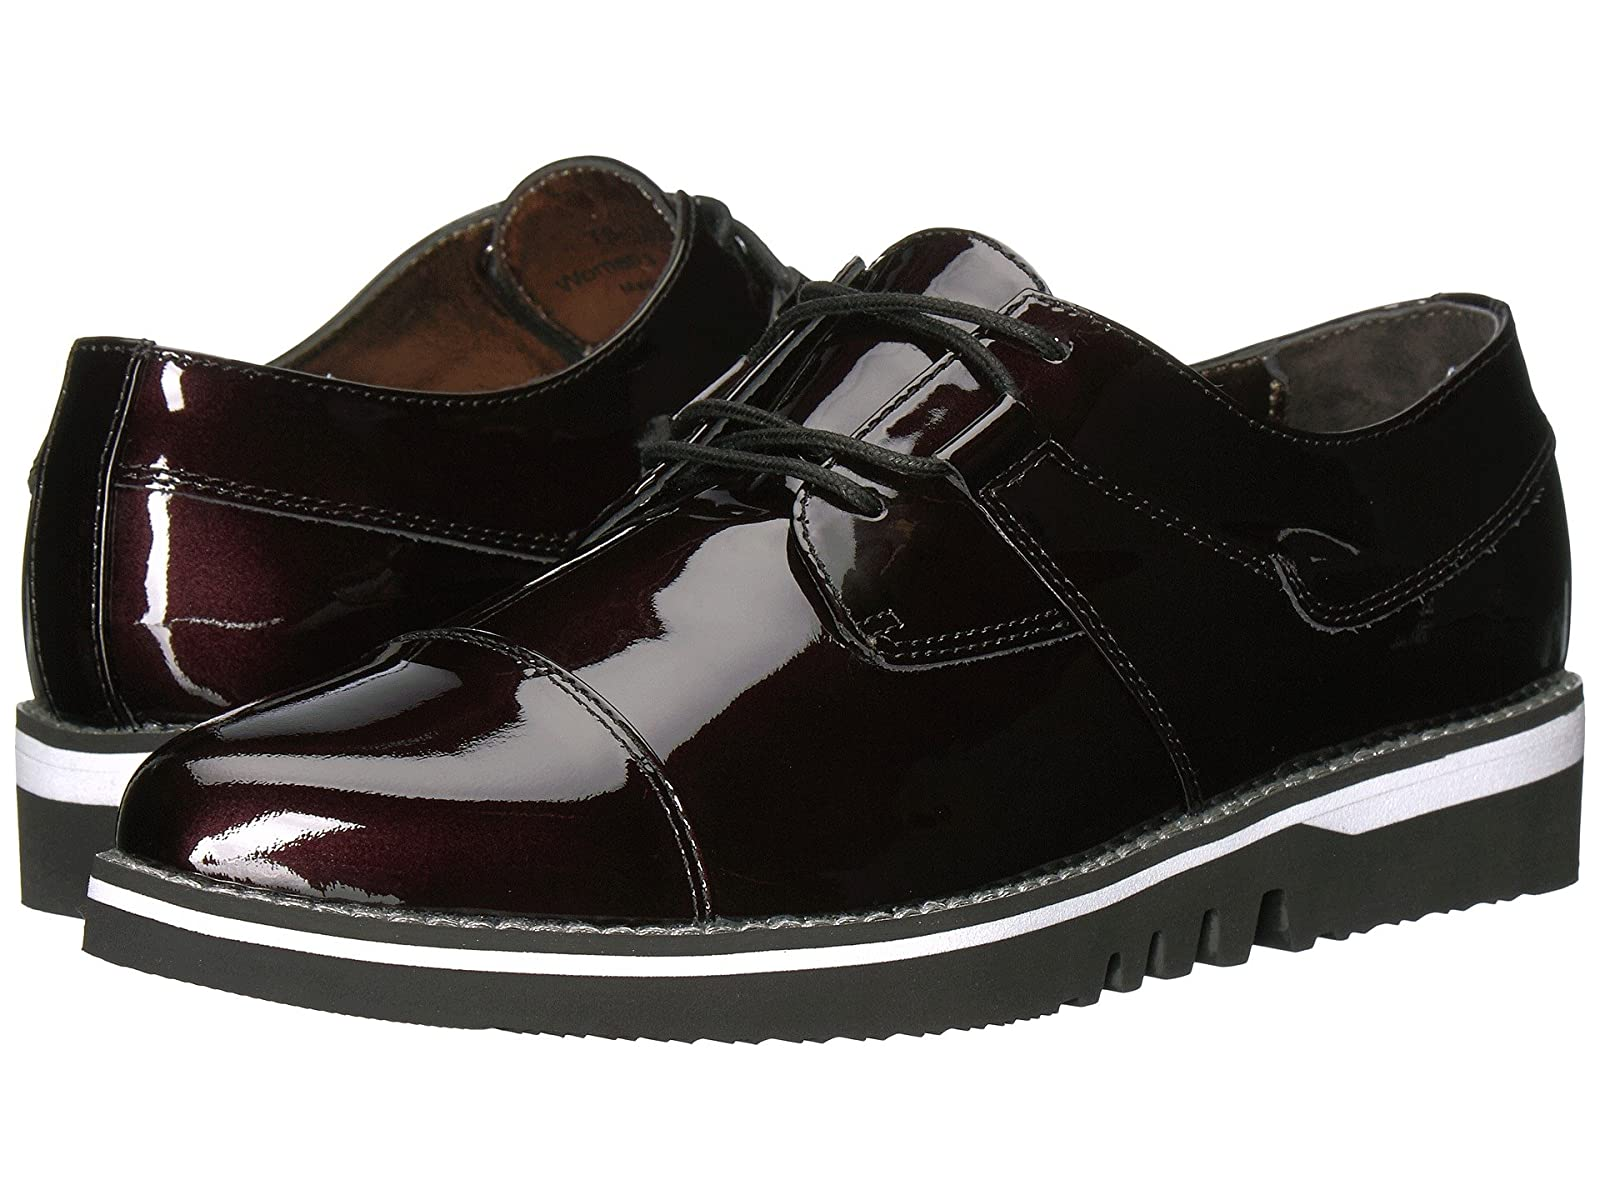 Johnston & Murphy BeccaCheap and distinctive eye-catching shoes